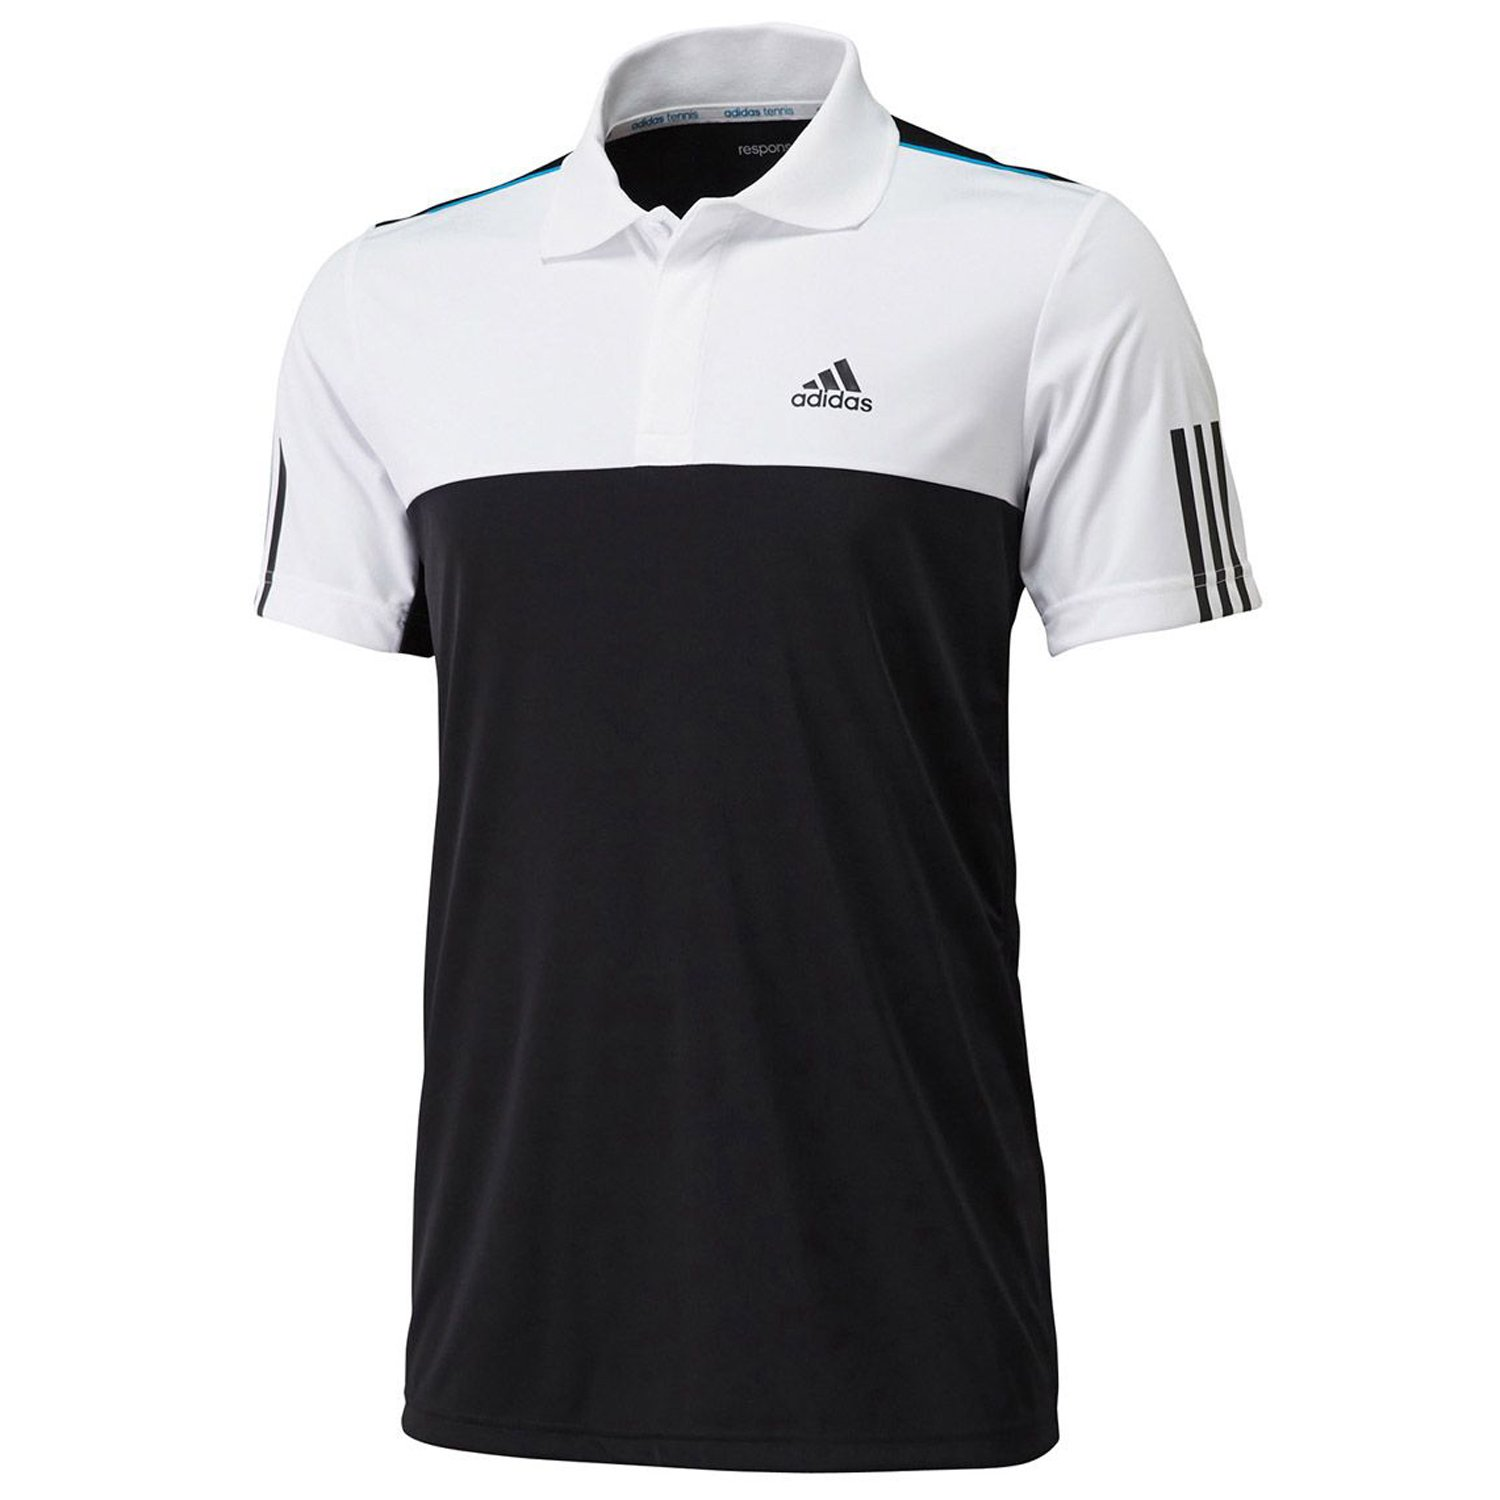 adidas Performance Response – Hombre Tenis Climacool Polo, Color ...